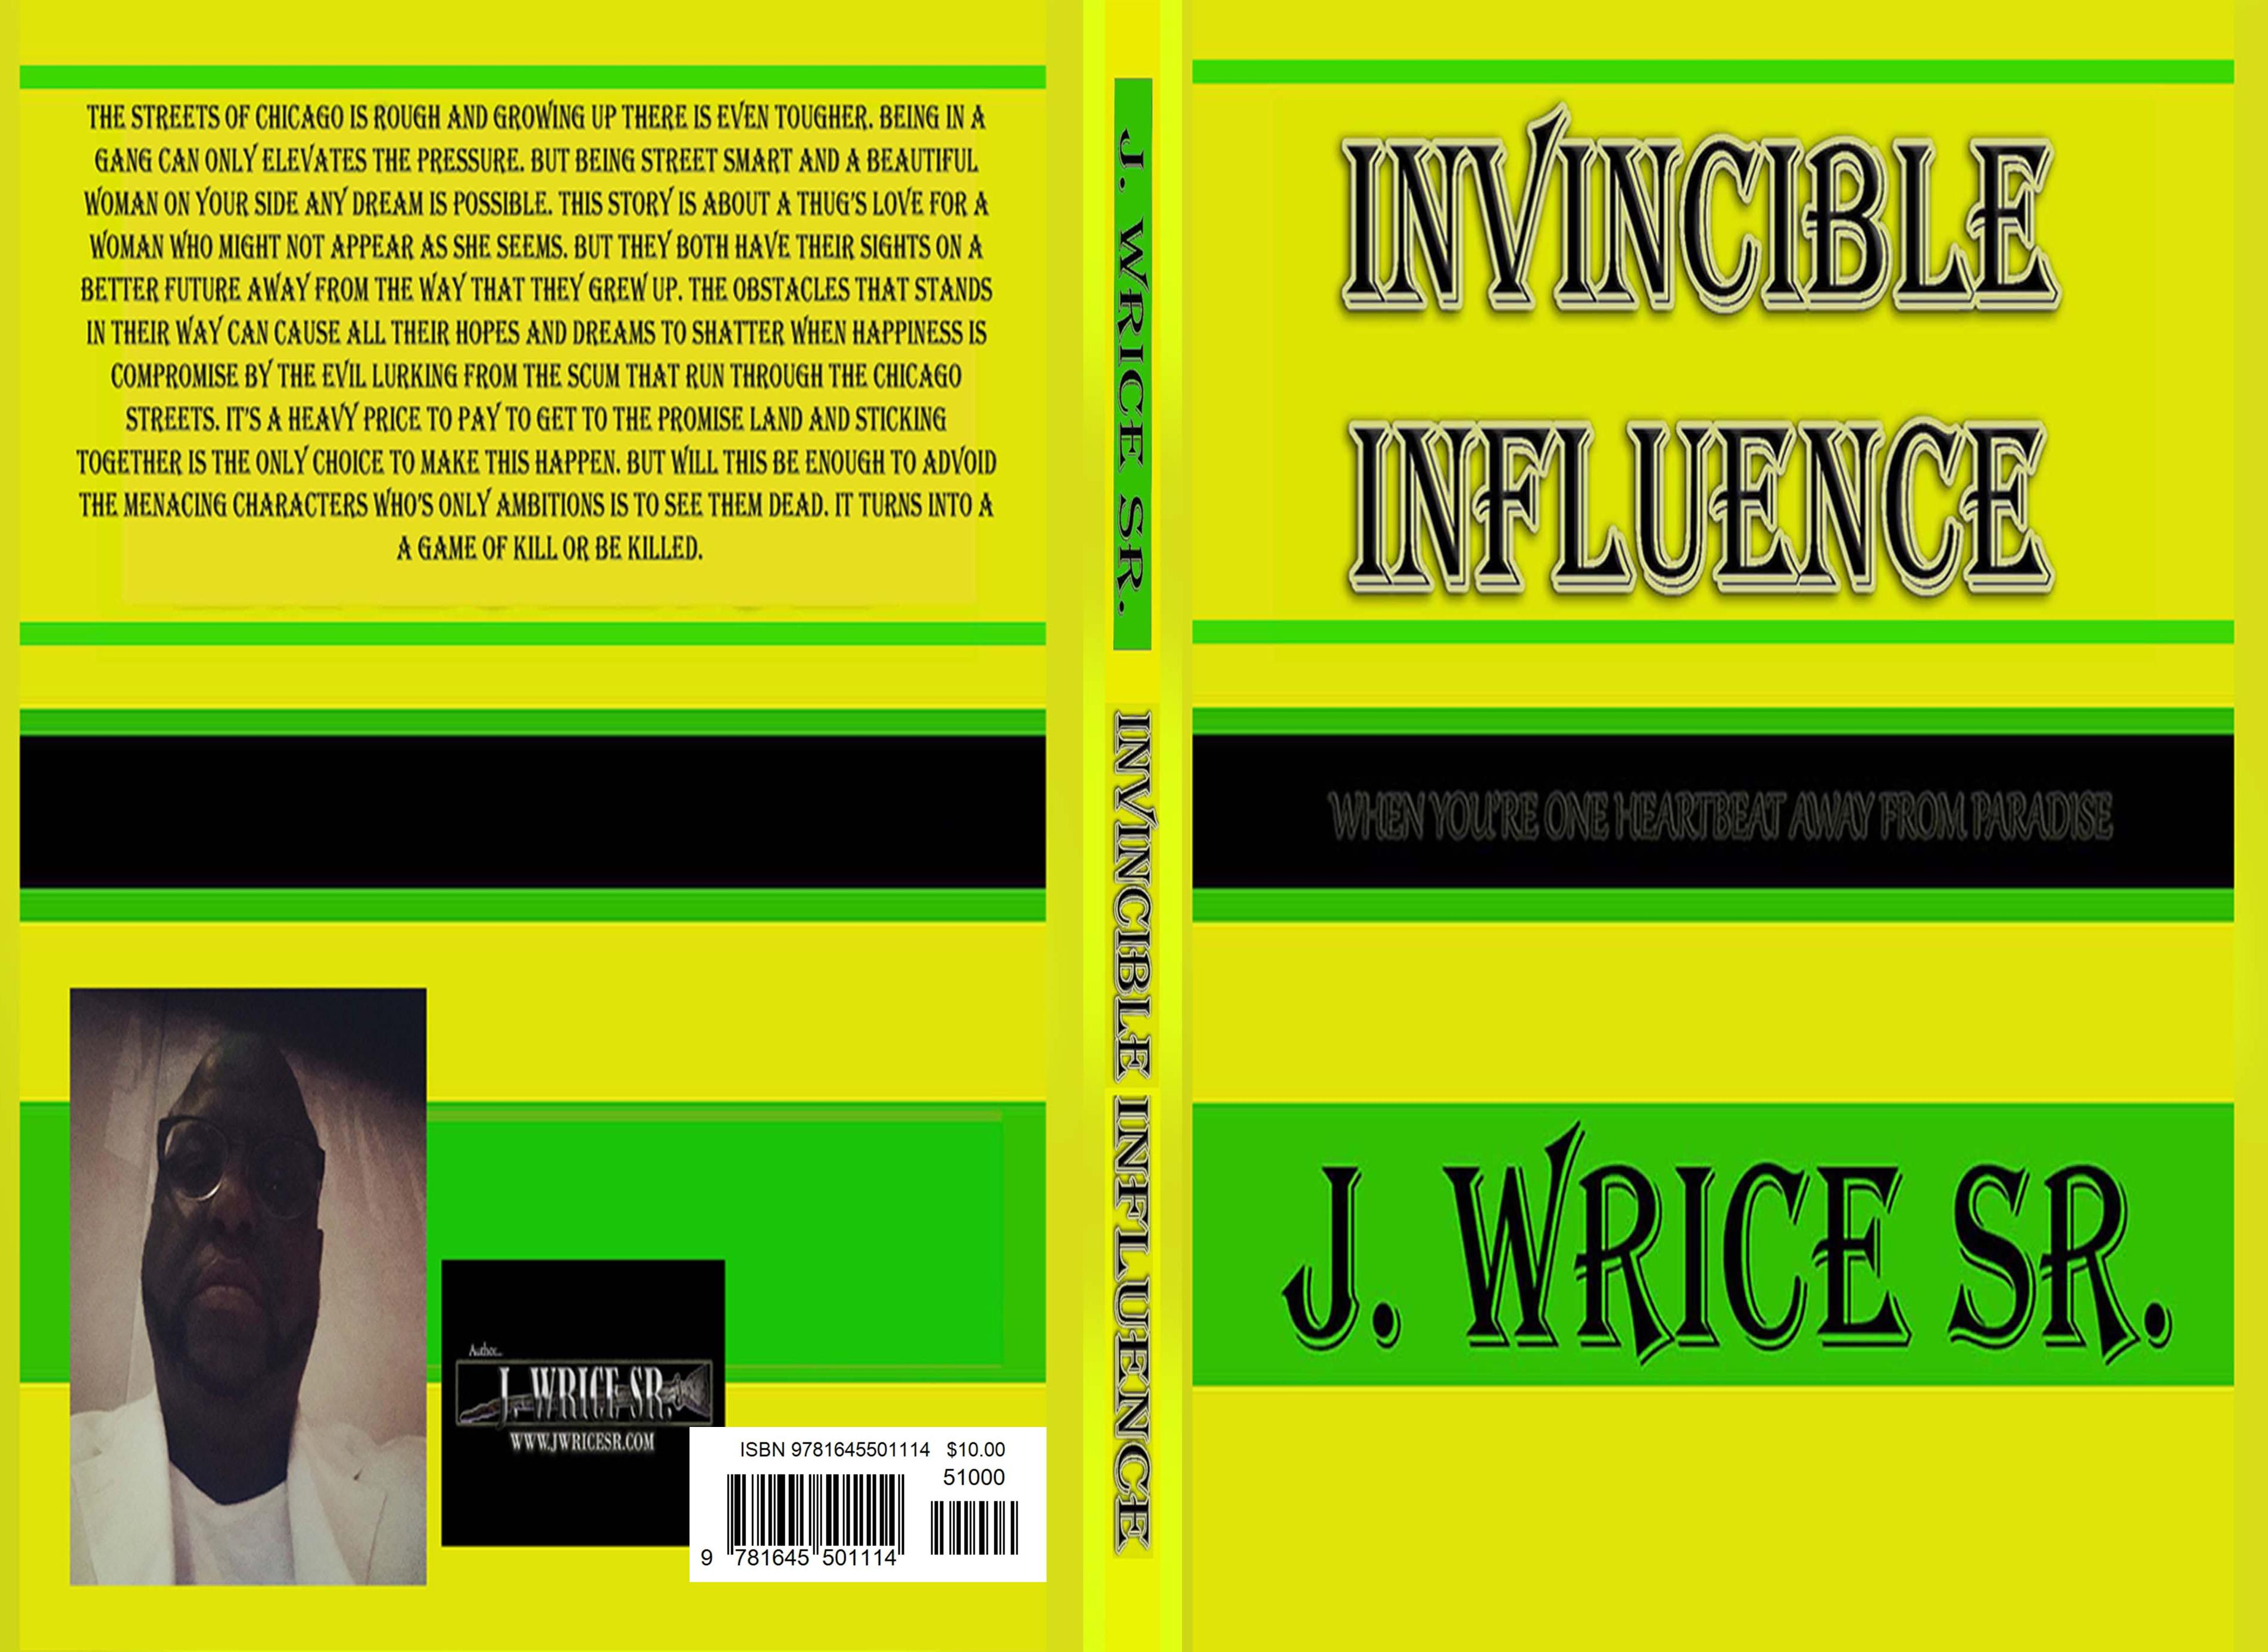 Invincible Influence cover image